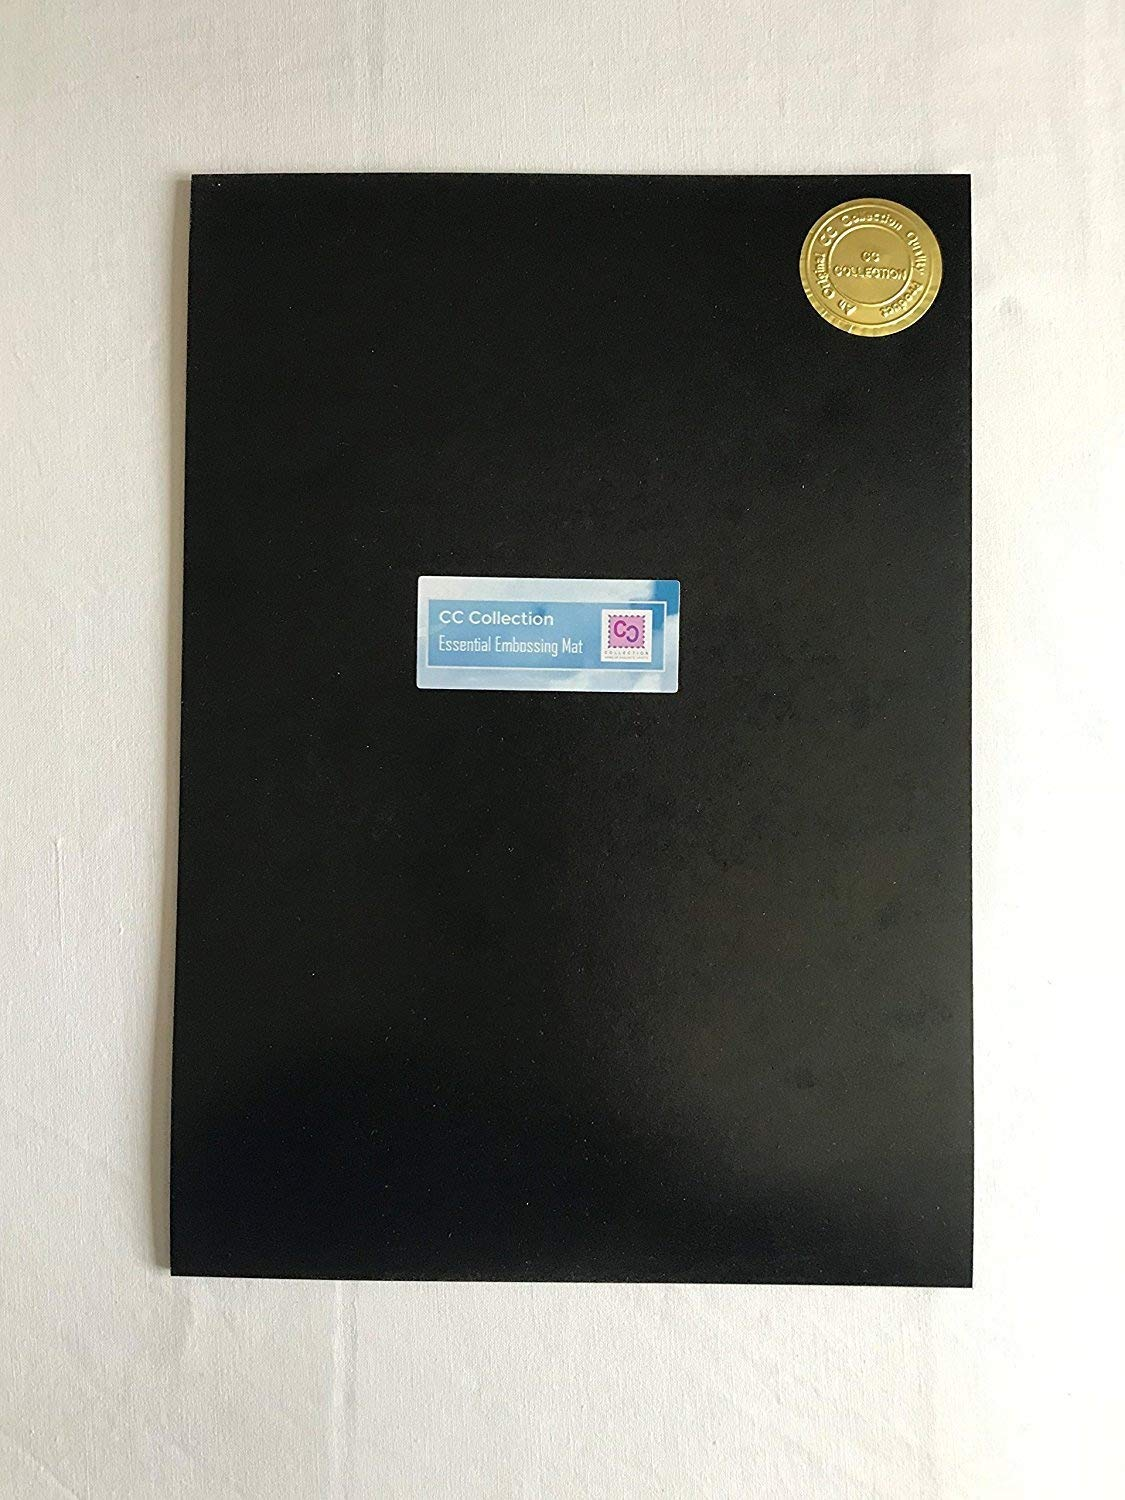 PROMOTION - Embossing Mat For PCA And Pergamano Parchment Craft Tools. A largeA4 (11.7 X 8.3 in) The Perfect Parchment Craft Mat - CC Collections 'Essential Embossing Mat' Is An Essential Addition To Your Craft....